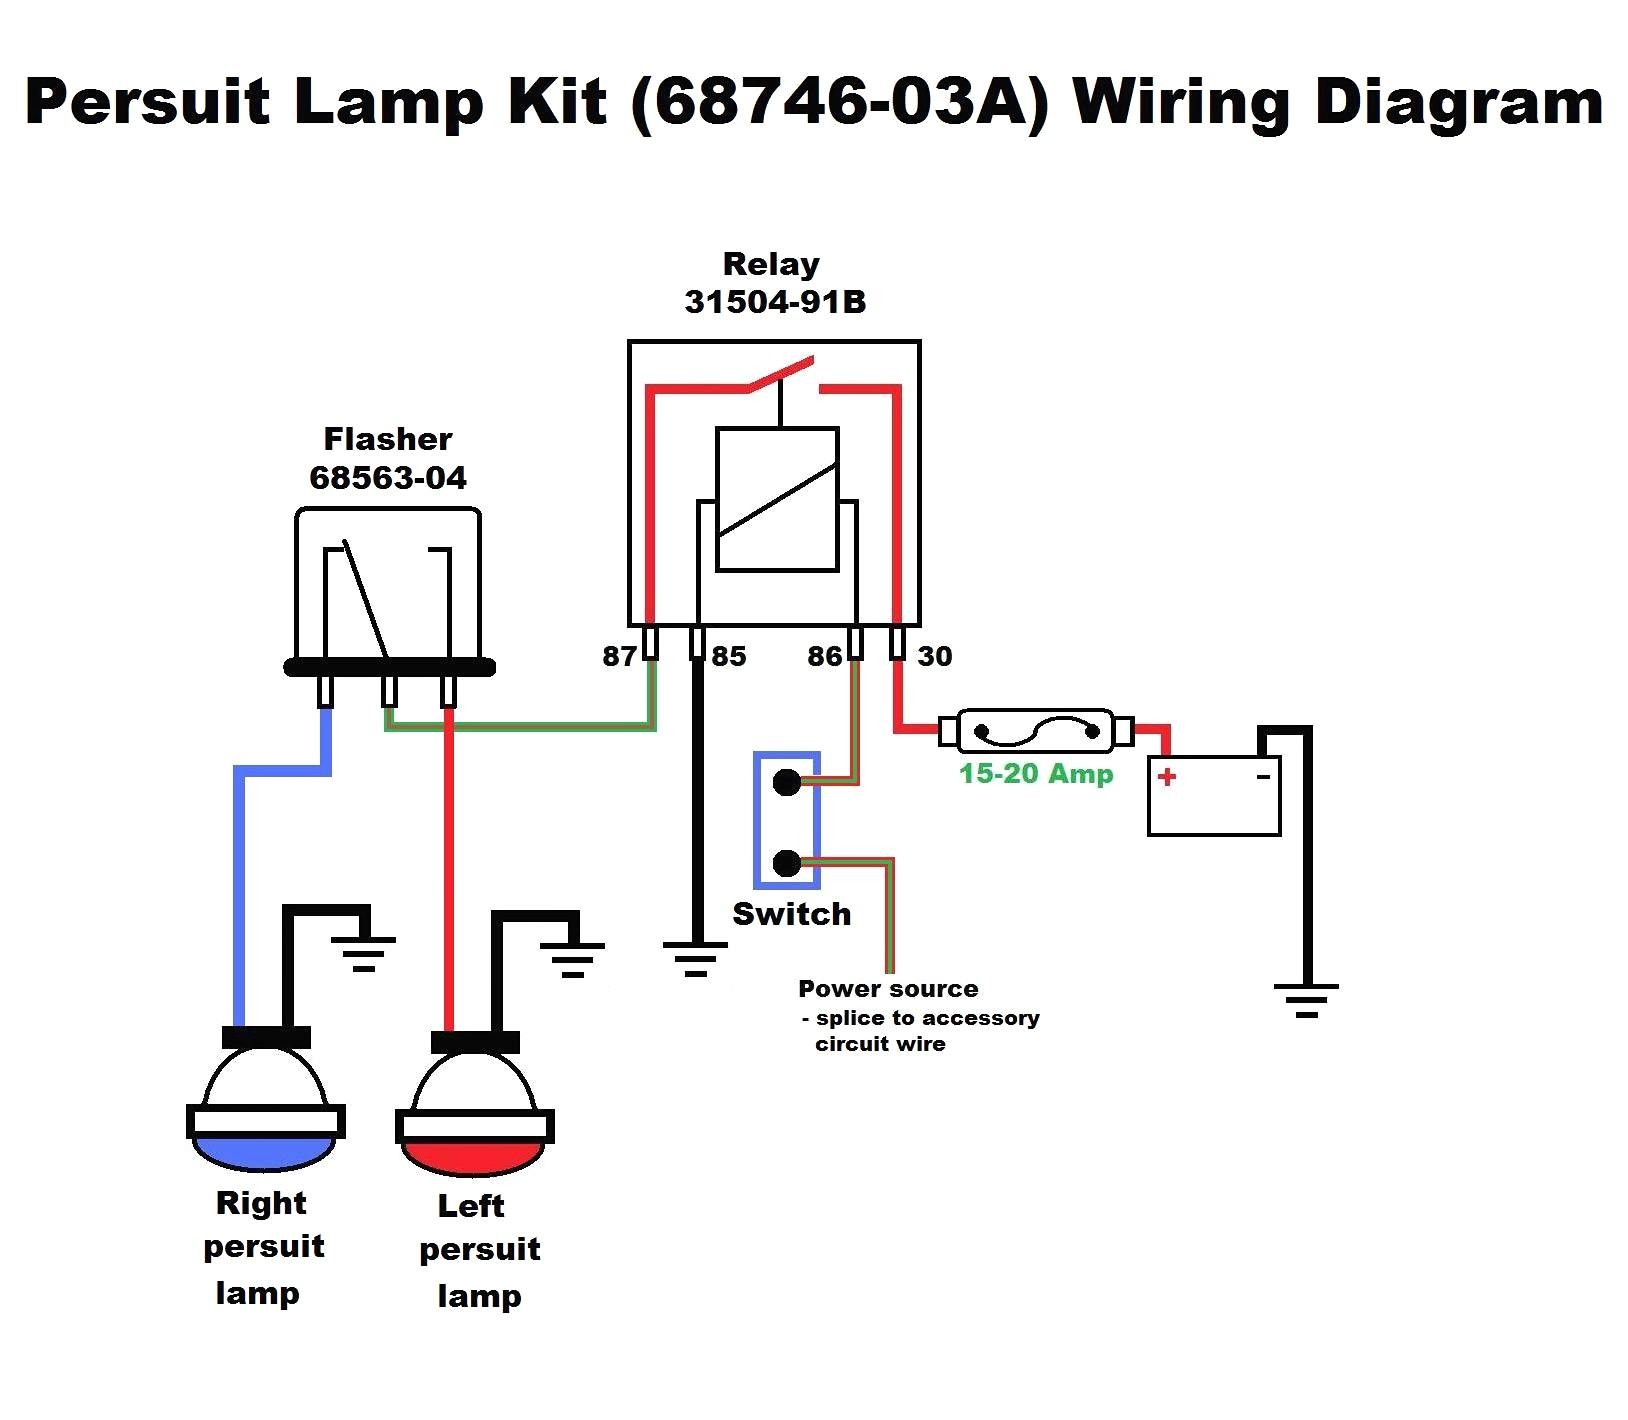 2 Pin Flasher Relay Wiring Diagram Simple 12v Horn Wiring Diagram Readingrat Net within Flasher Relay Of 2 Pin Flasher Relay Wiring Diagram